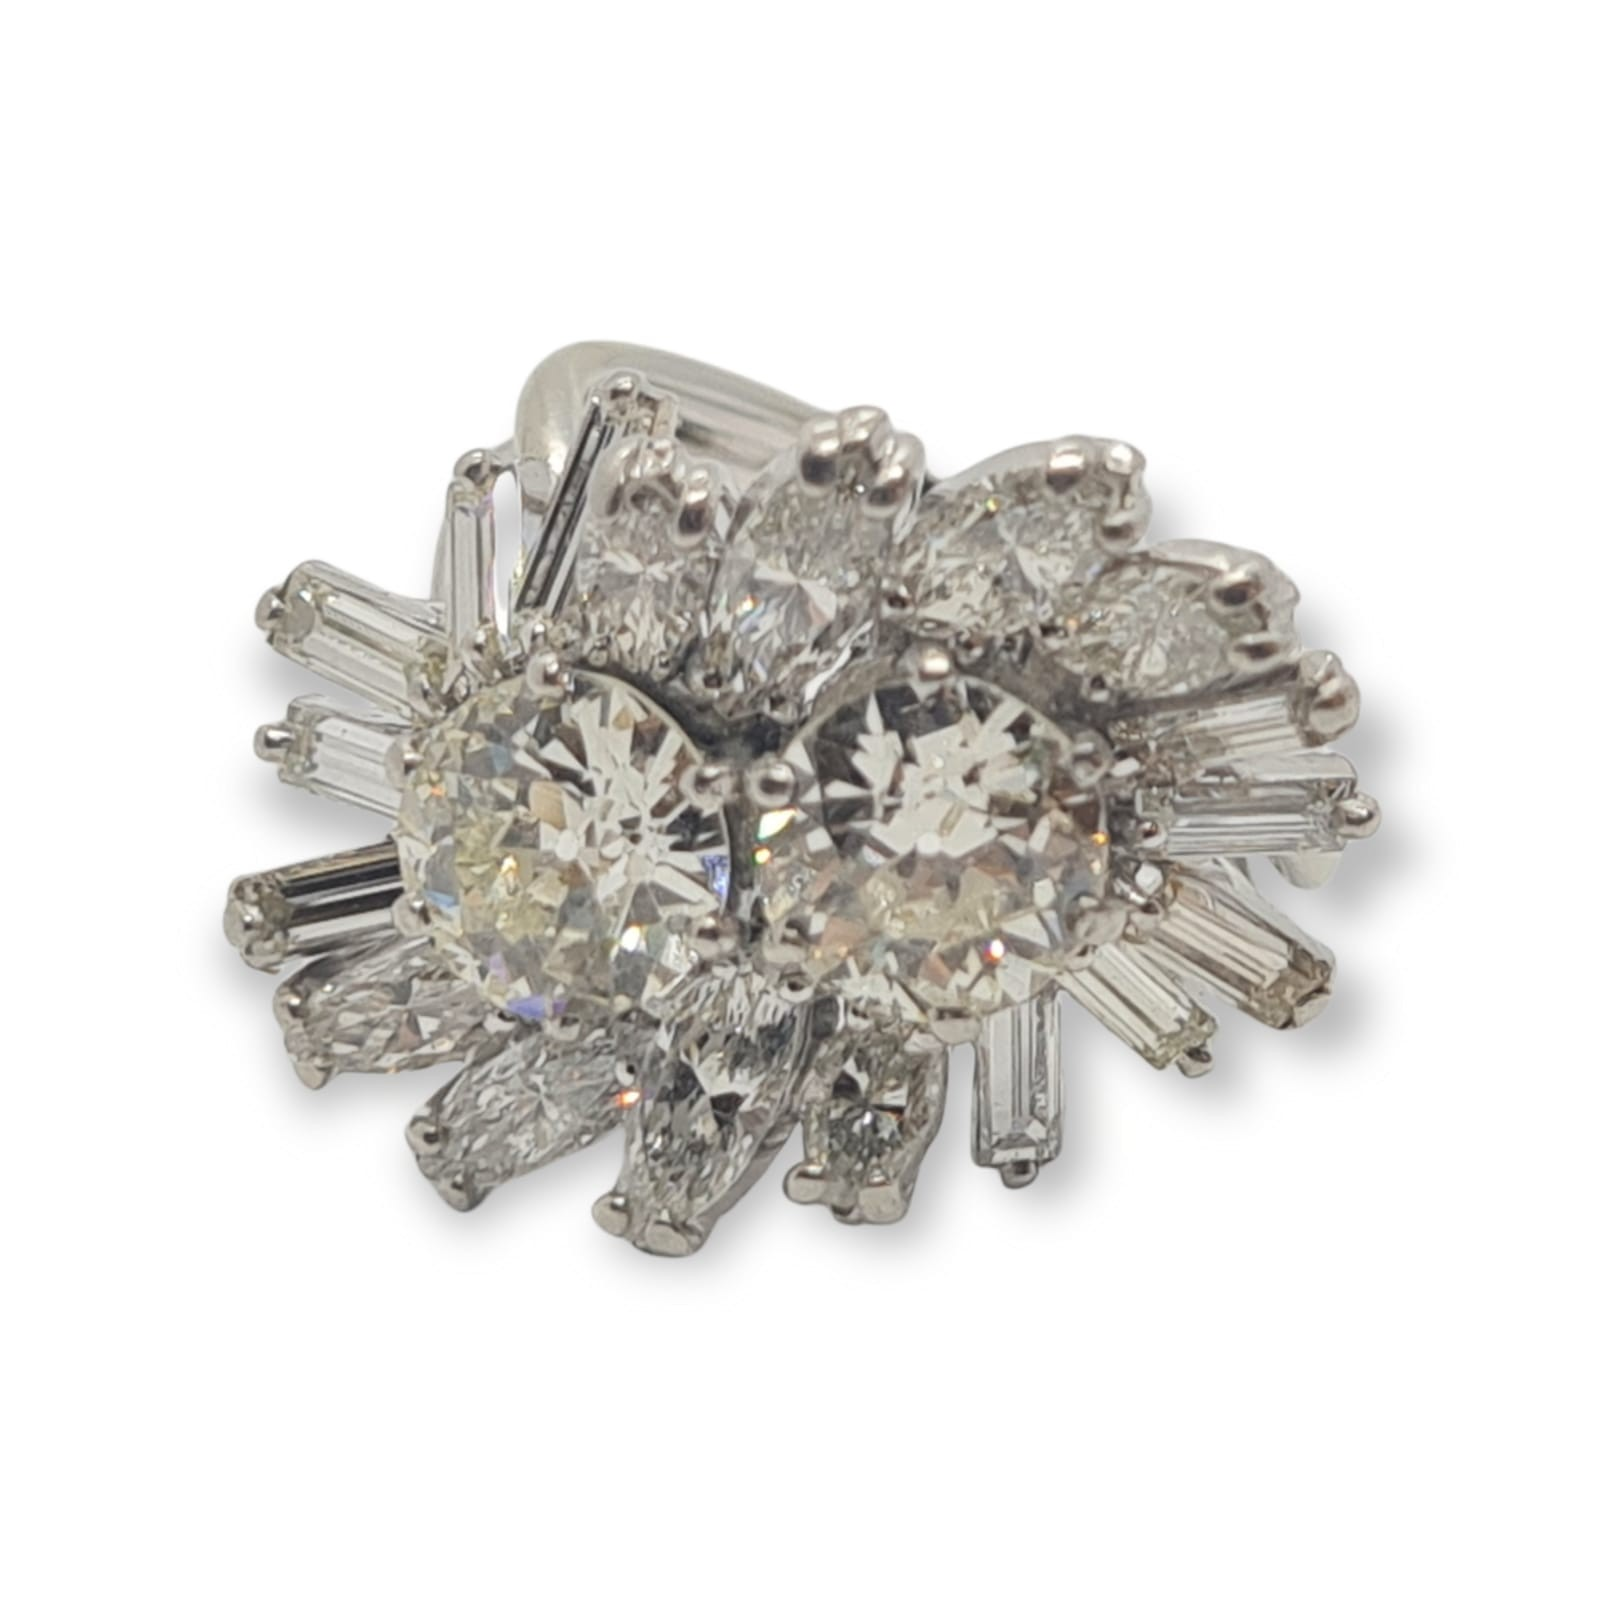 18k white gold diamond cluster ring with approx over 5ct diamonds in total, weight 10g and size M1/2